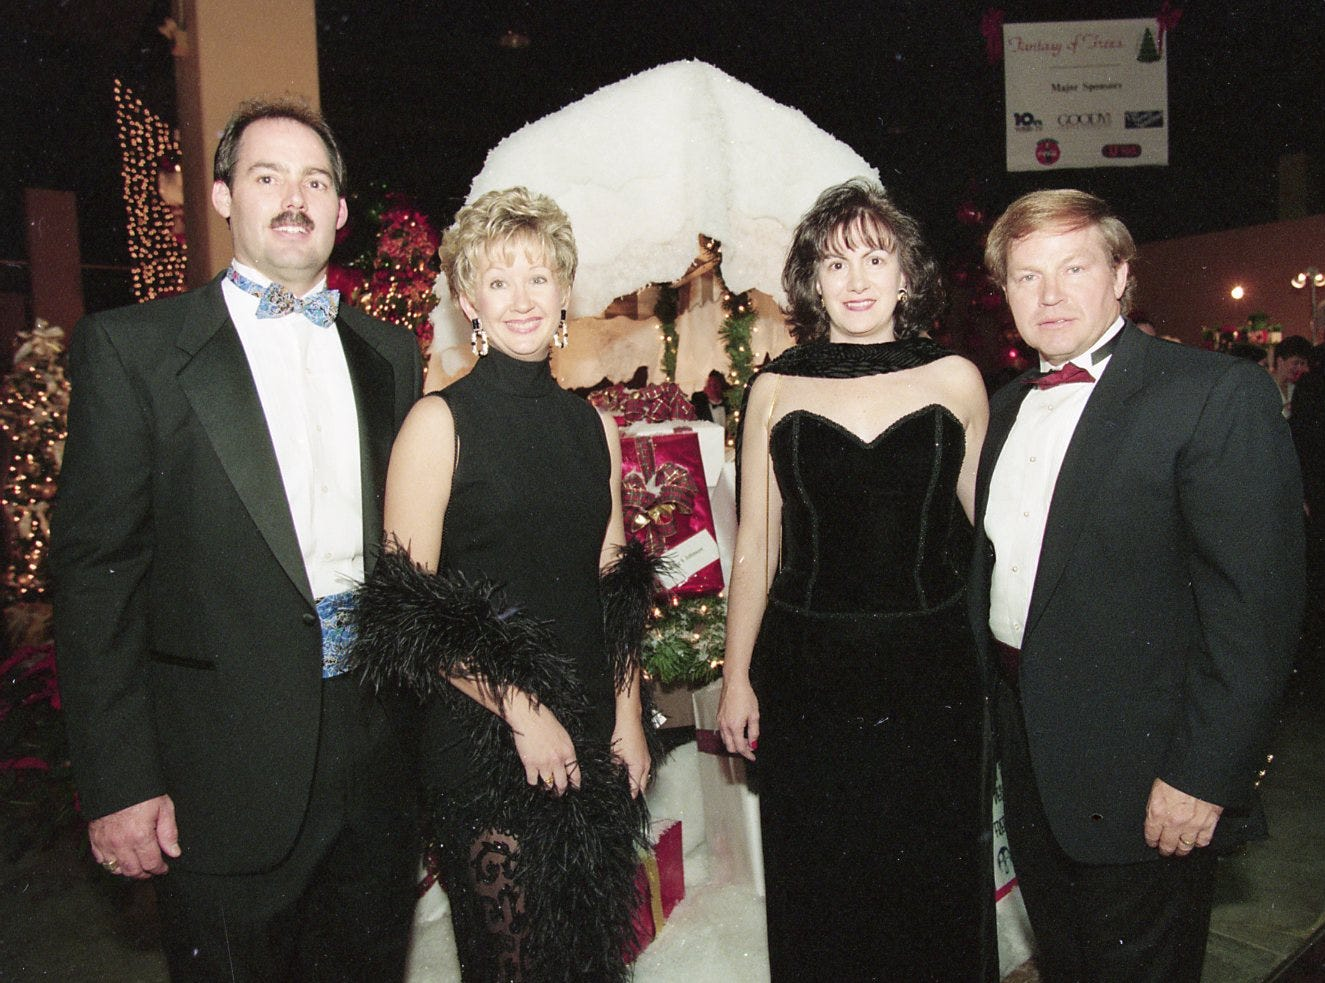 Roger and Karen Gilbert and Michelle and Ernest Brewer at the Fantasy of Trees opening night gala, November, 1995.